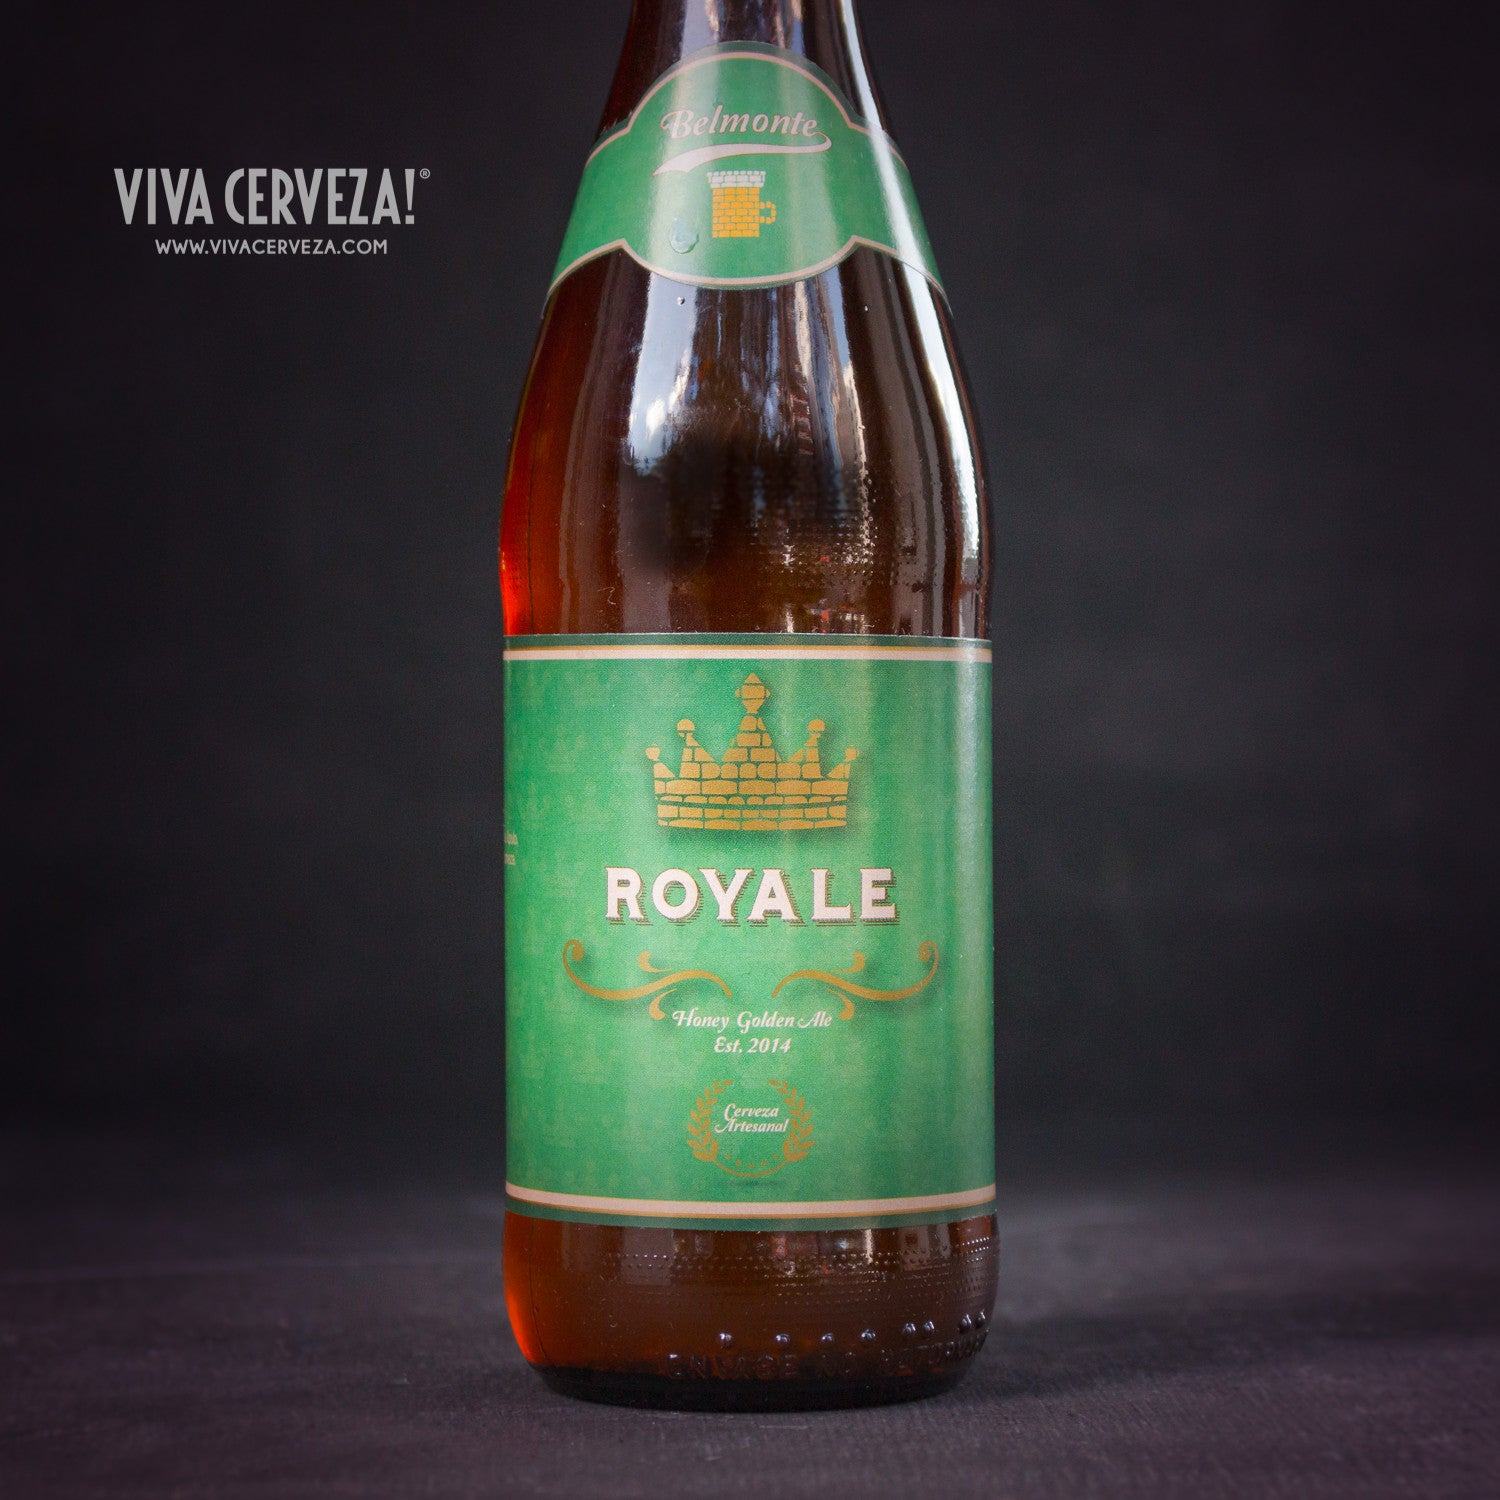 Belmonte Royale - 300ml Botella Cerveza Artesanal Craft Beer Ecuador - %